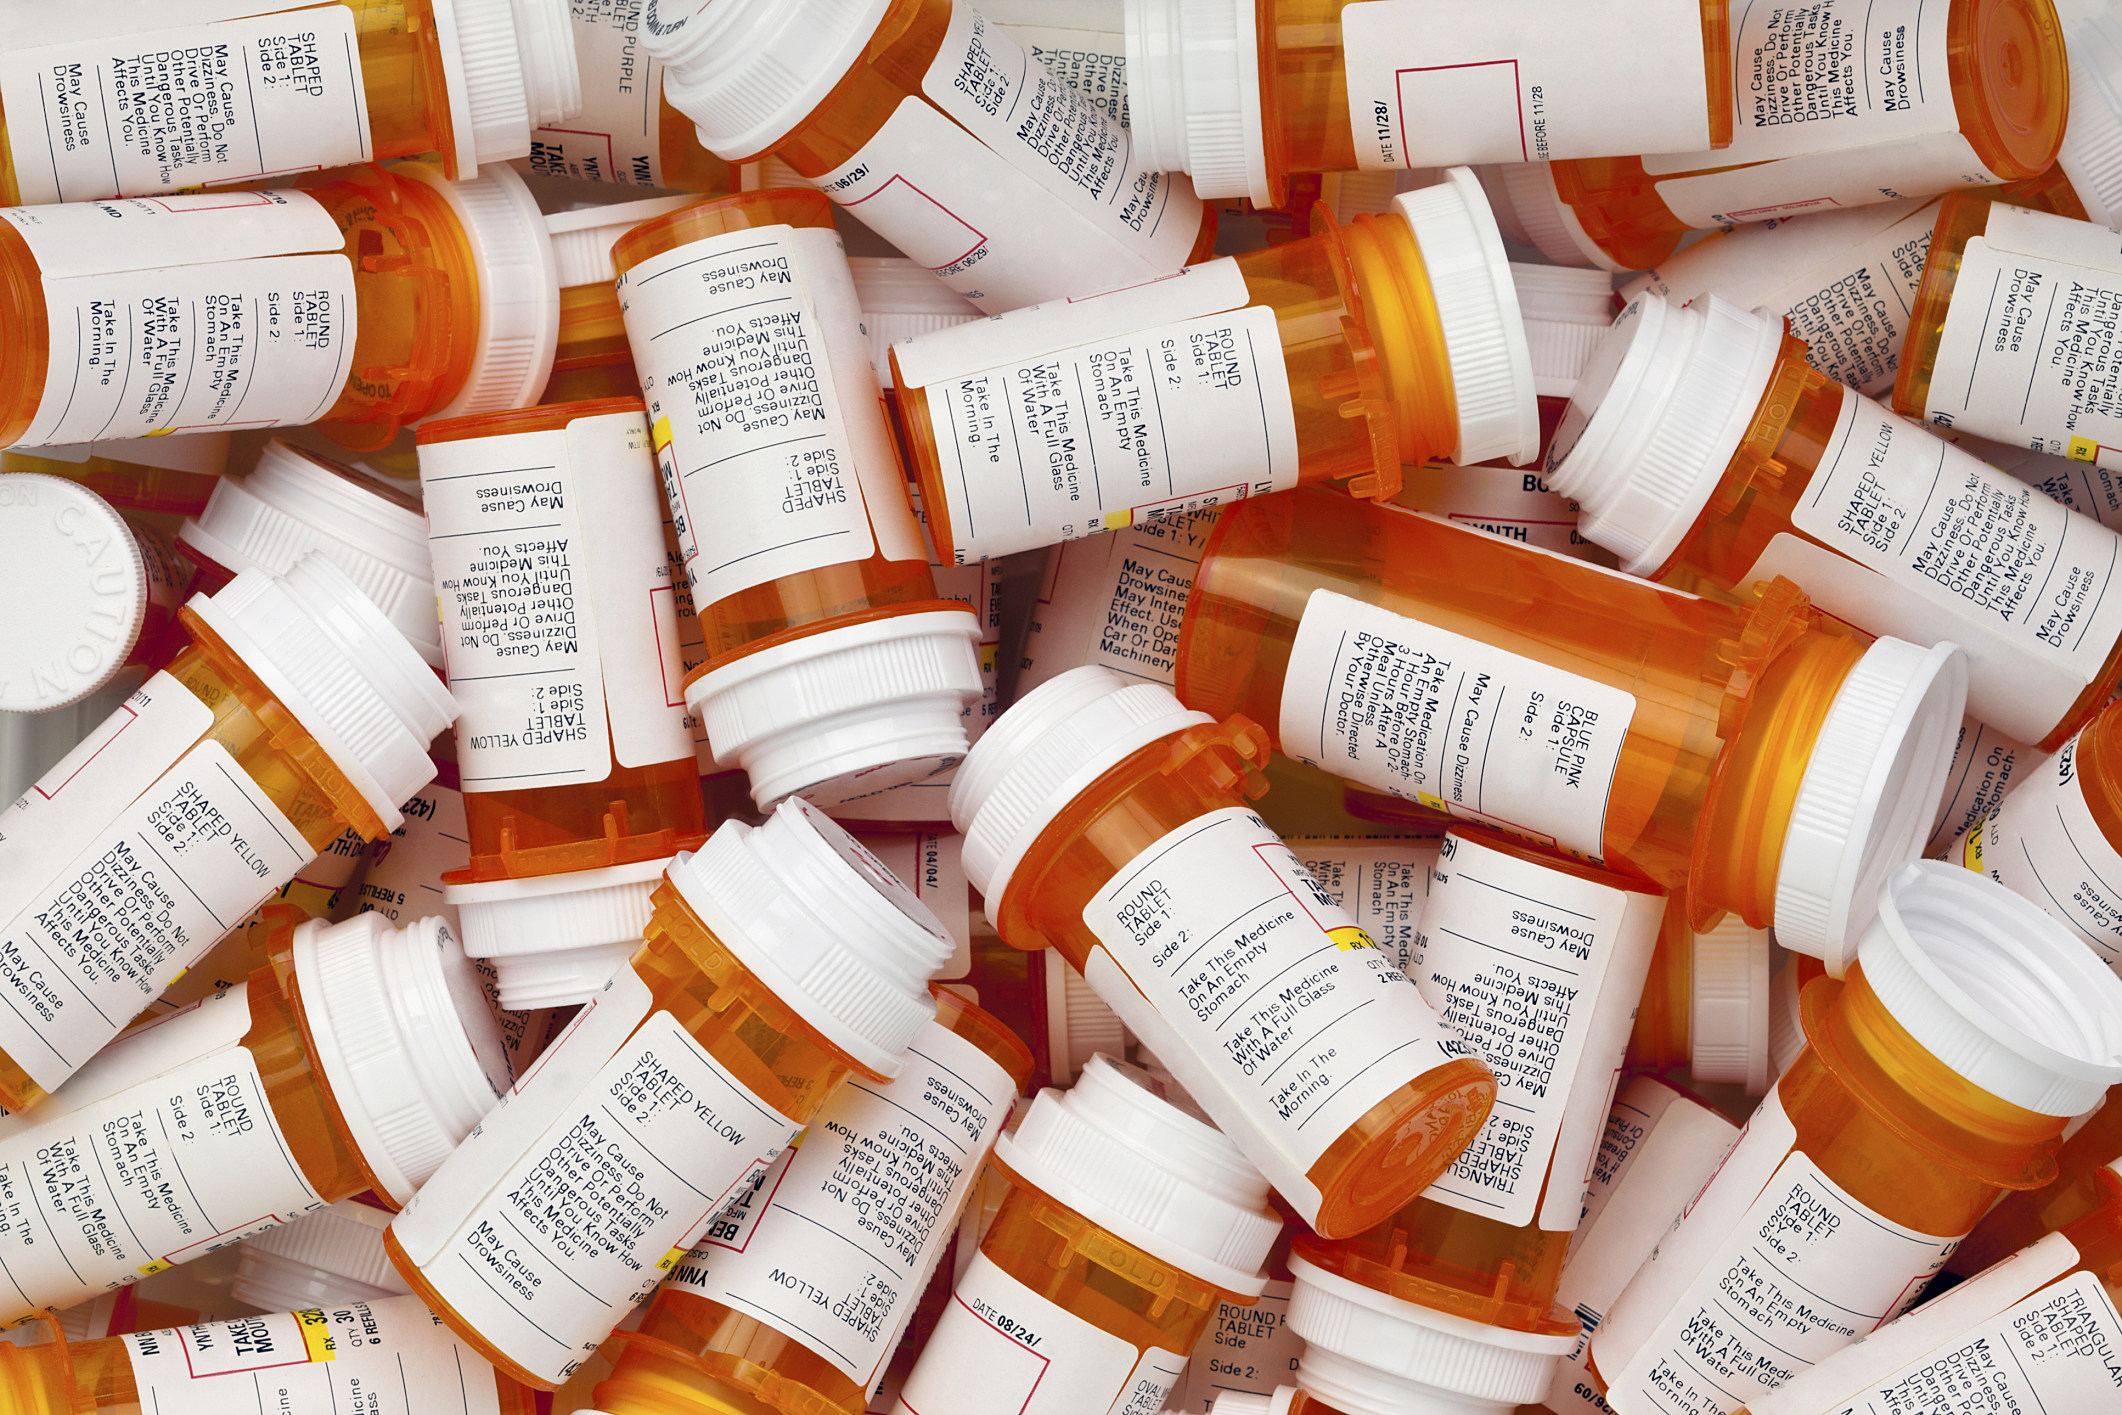 Drop-off locations list for Saturday's National Prescription Drug Take Back Day